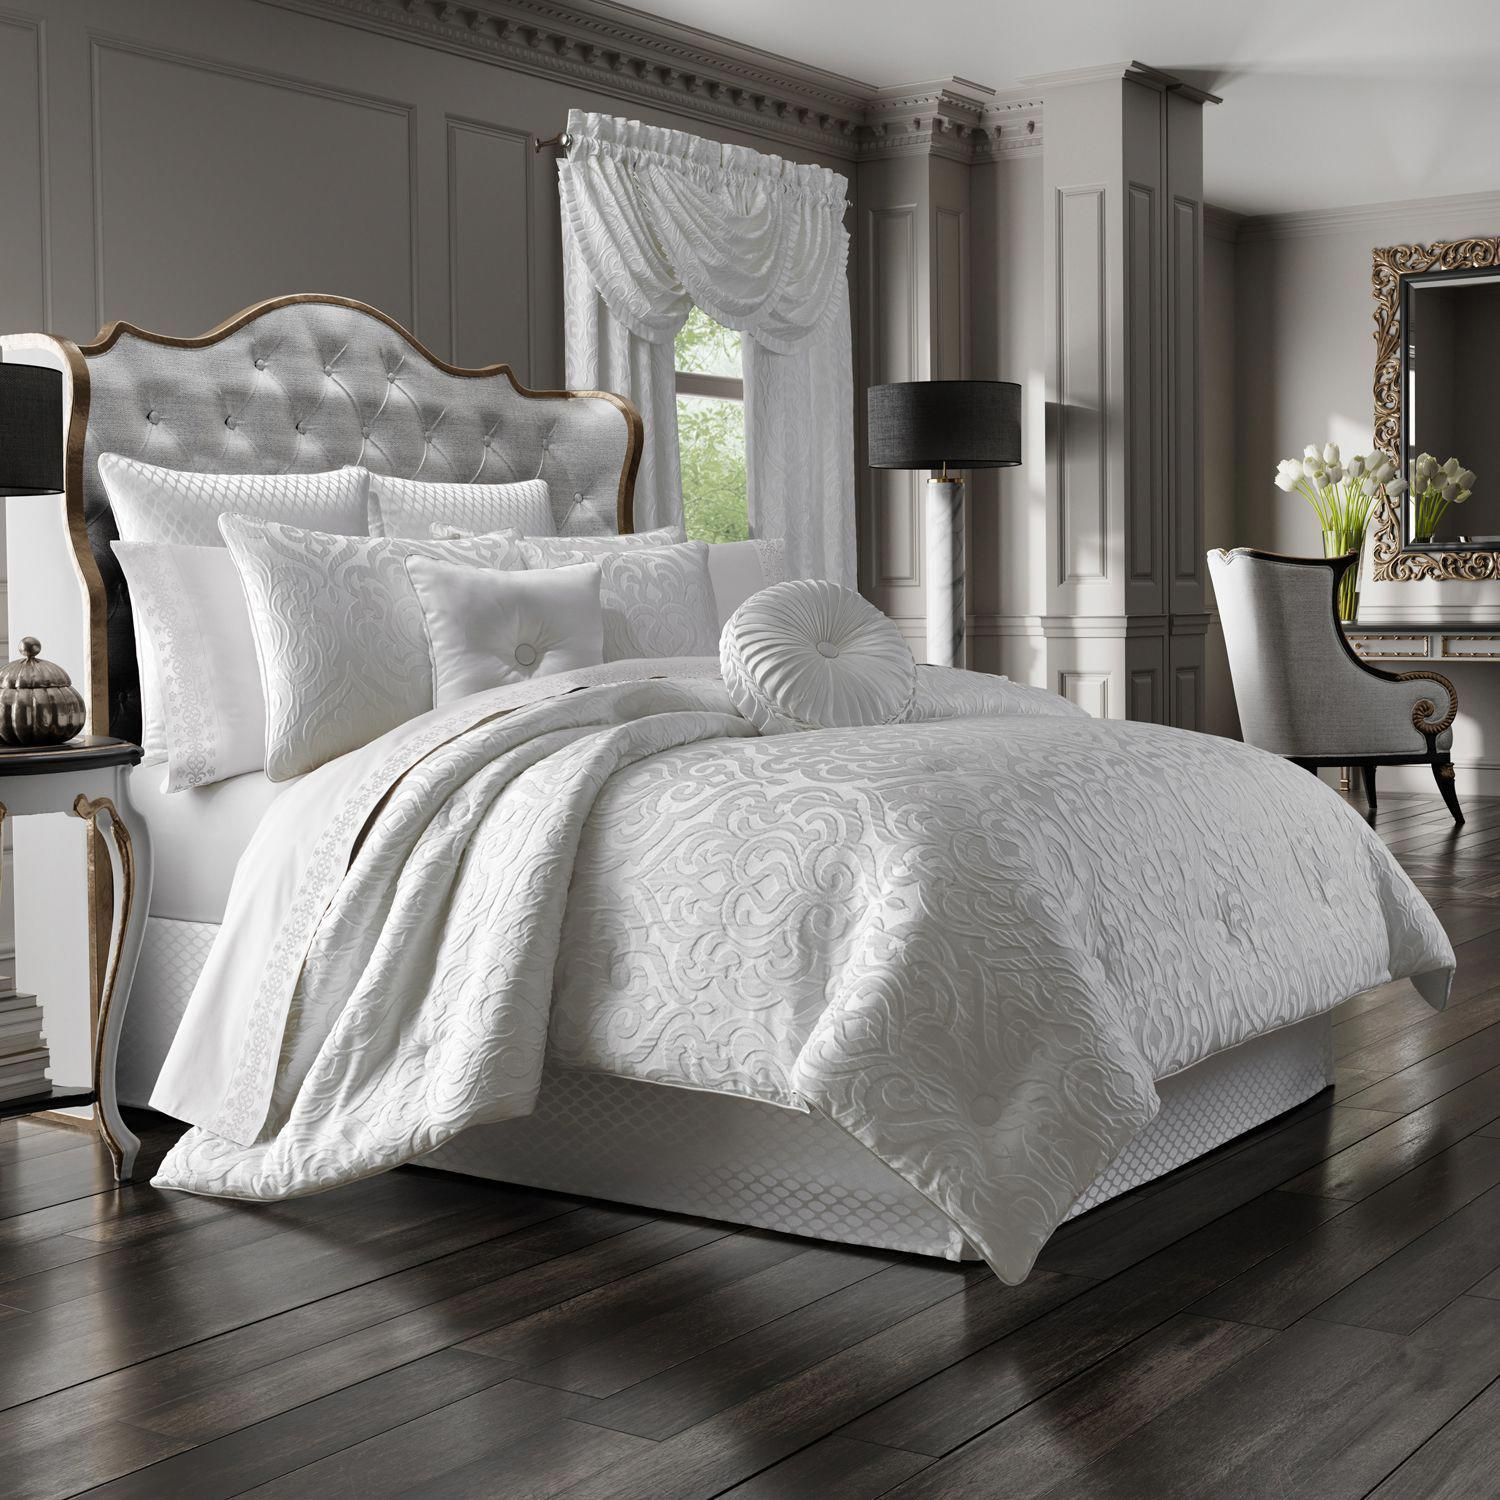 Auburn White 4Piece Queen Comforter Set in 2020 Luxury